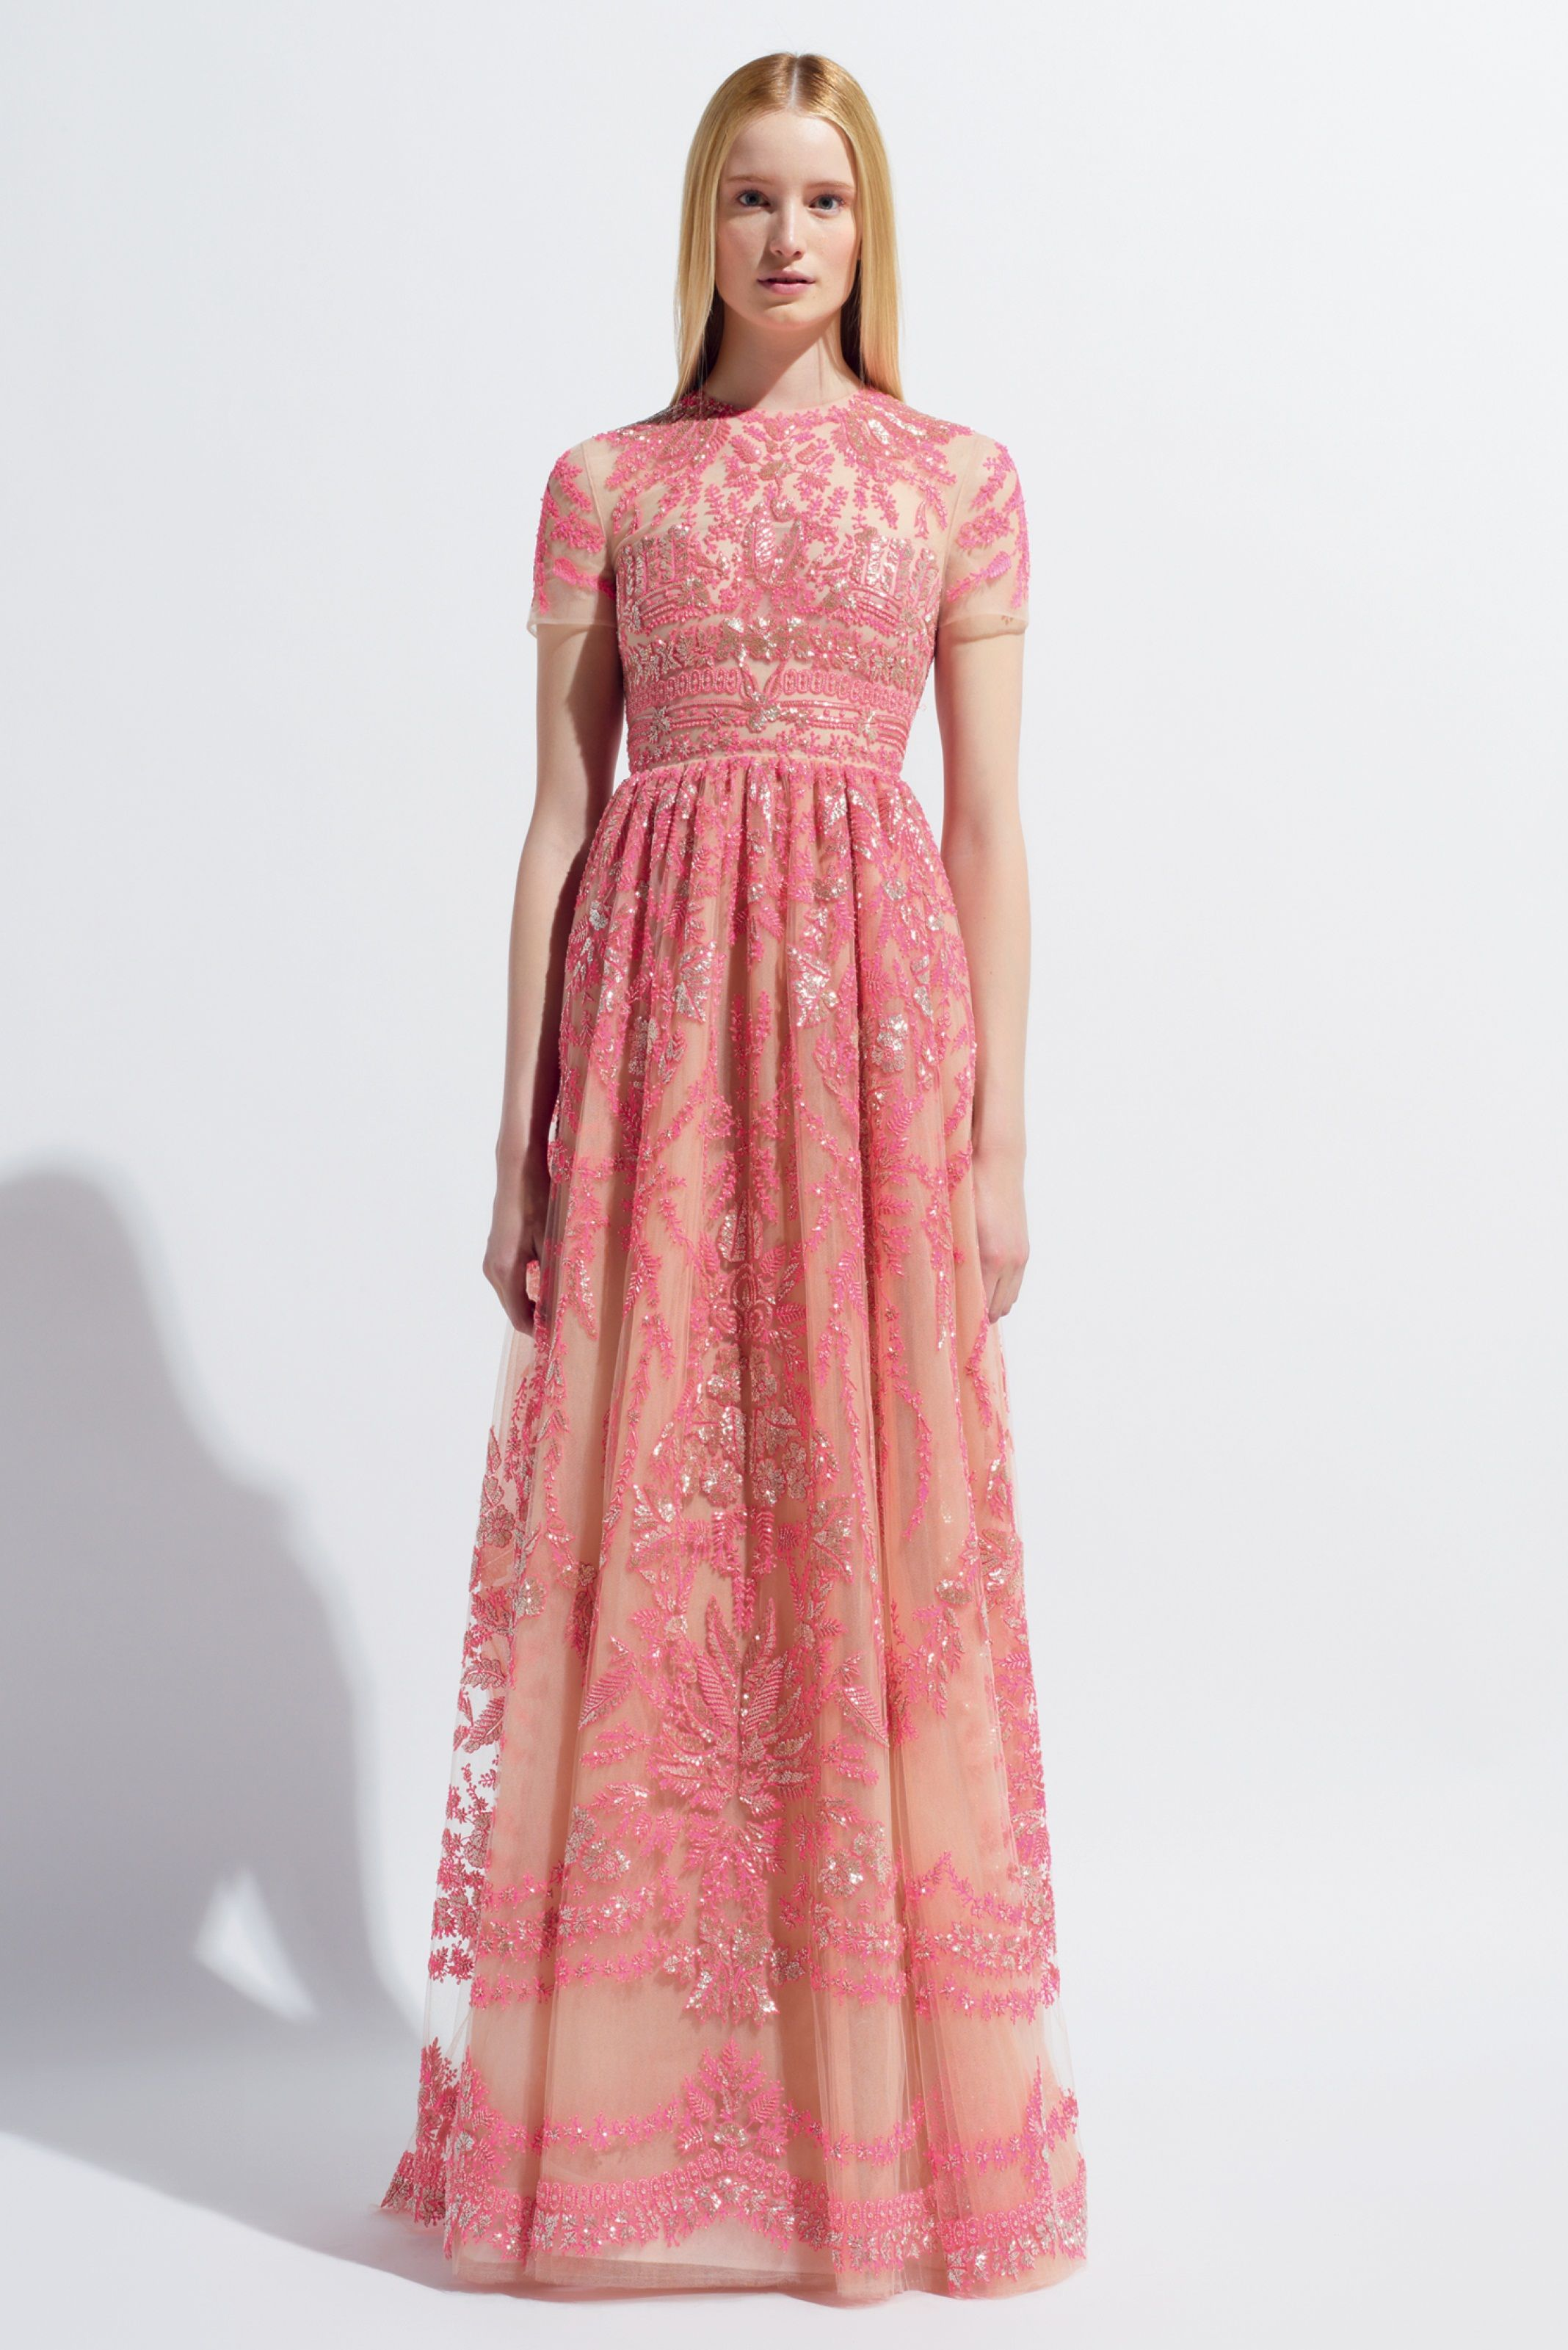 Valentino Pre Spring 2014 | Coveted Clothing | Pinterest